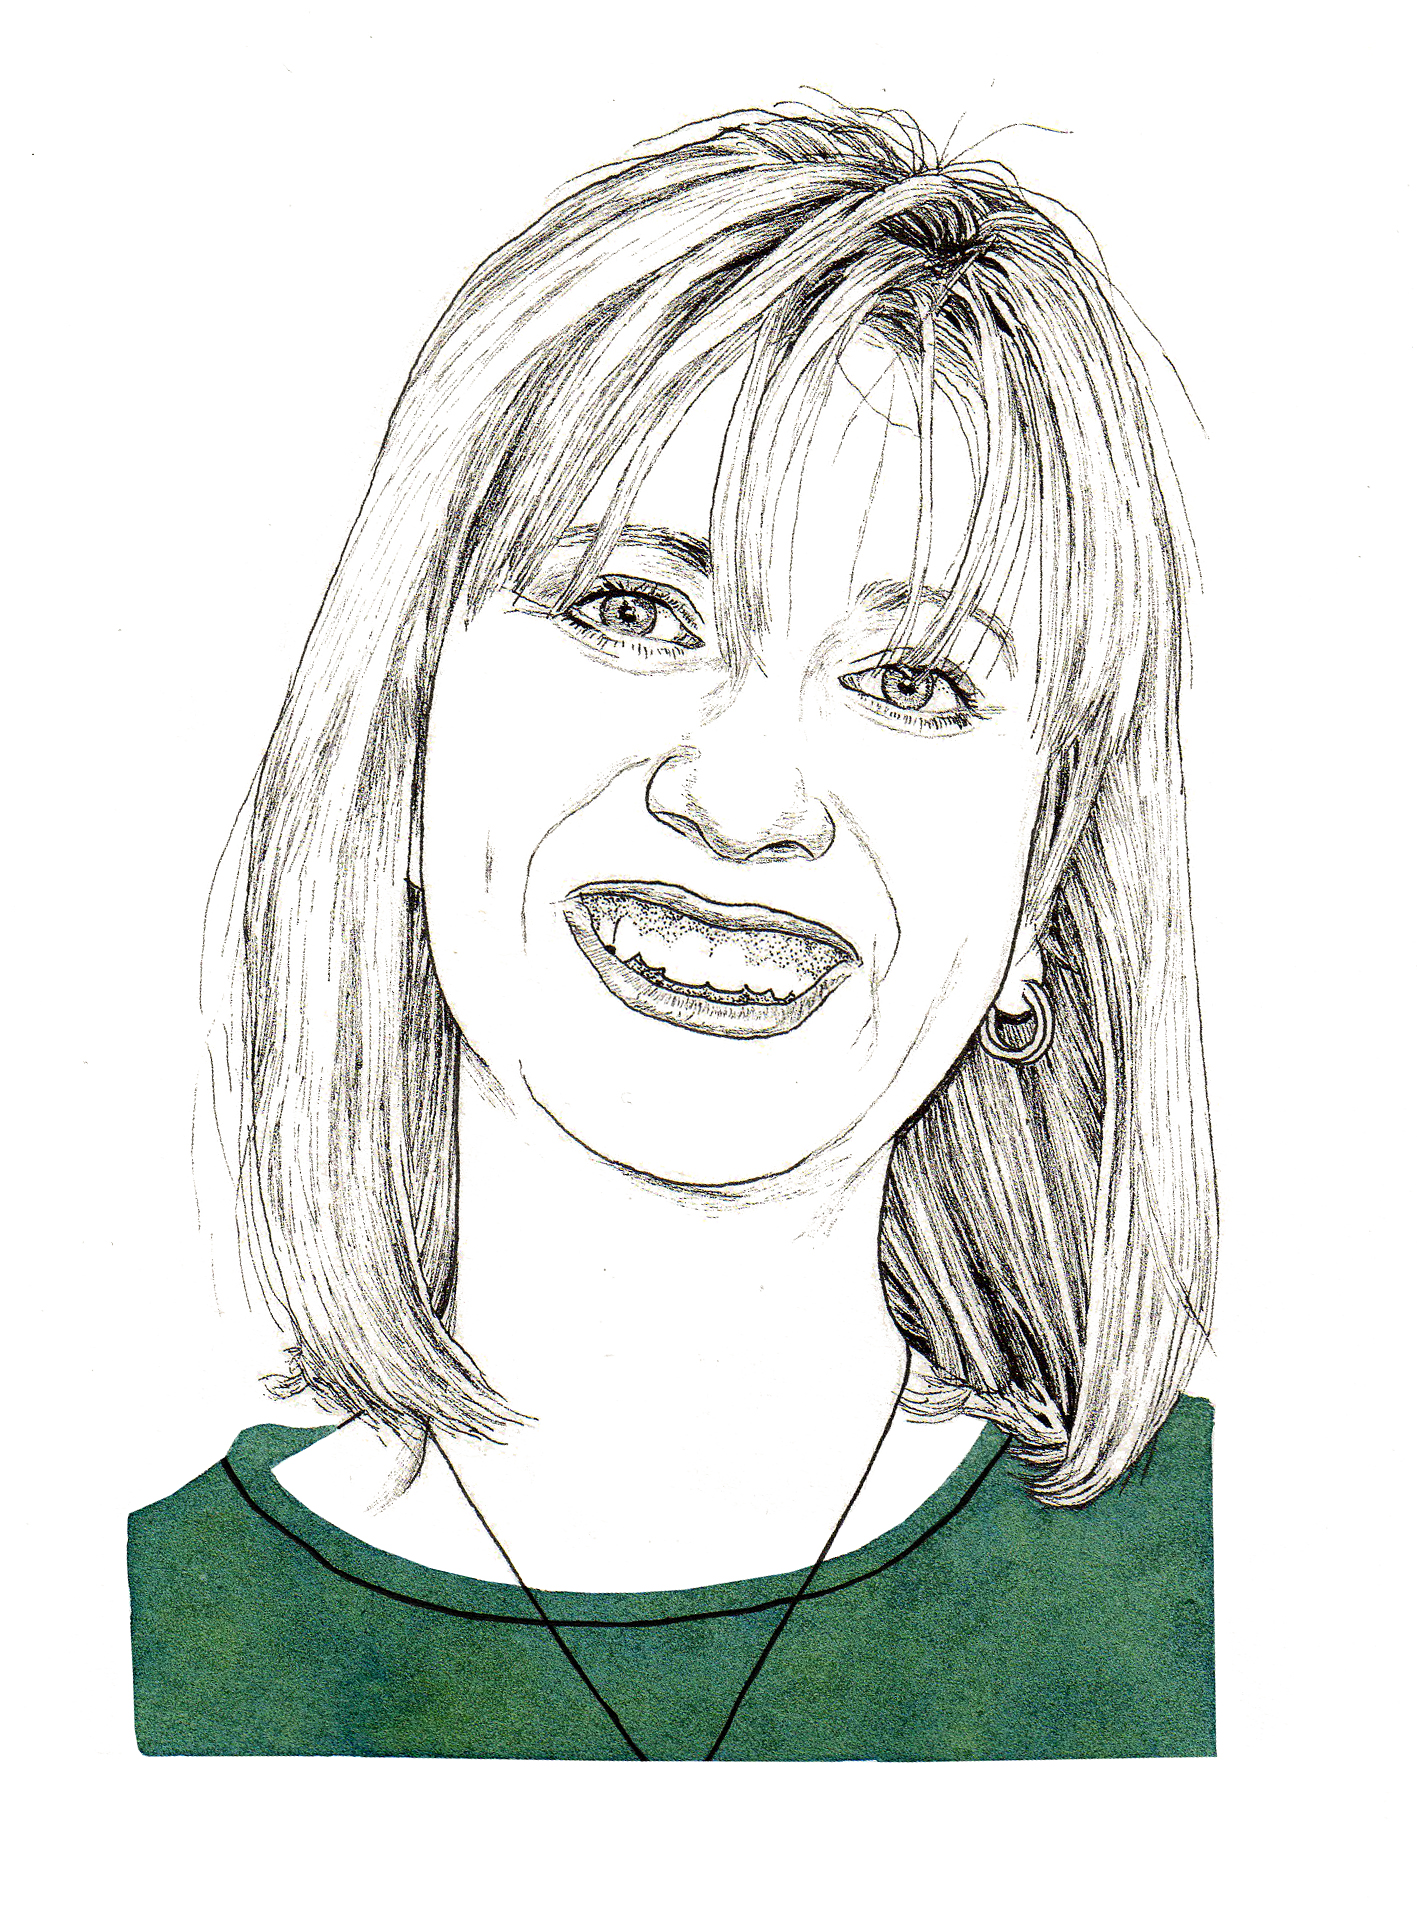 Natasha Ridge (Illustration by Adam Cruft)